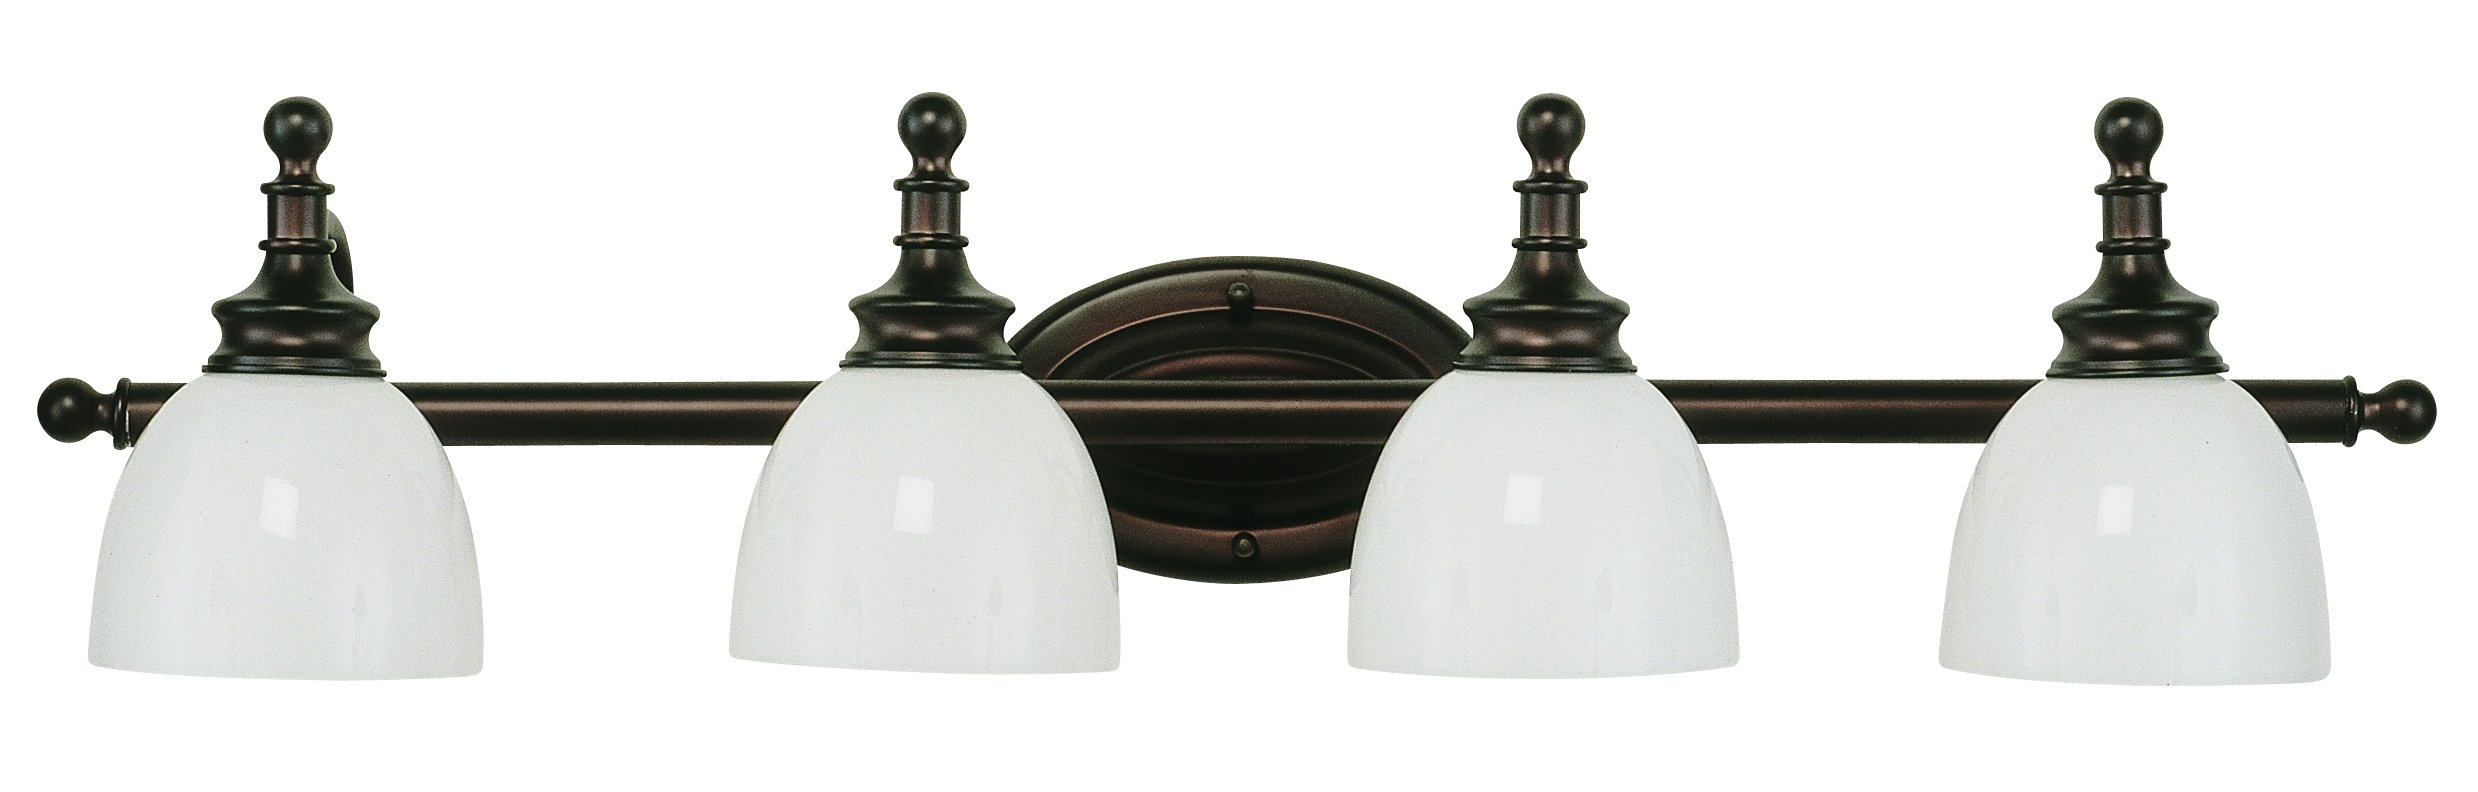 Trans Globe Lighting 34144 ROB Indoor  Kovacs 36'' Vanity Bar, Rubbed Oil Bronze